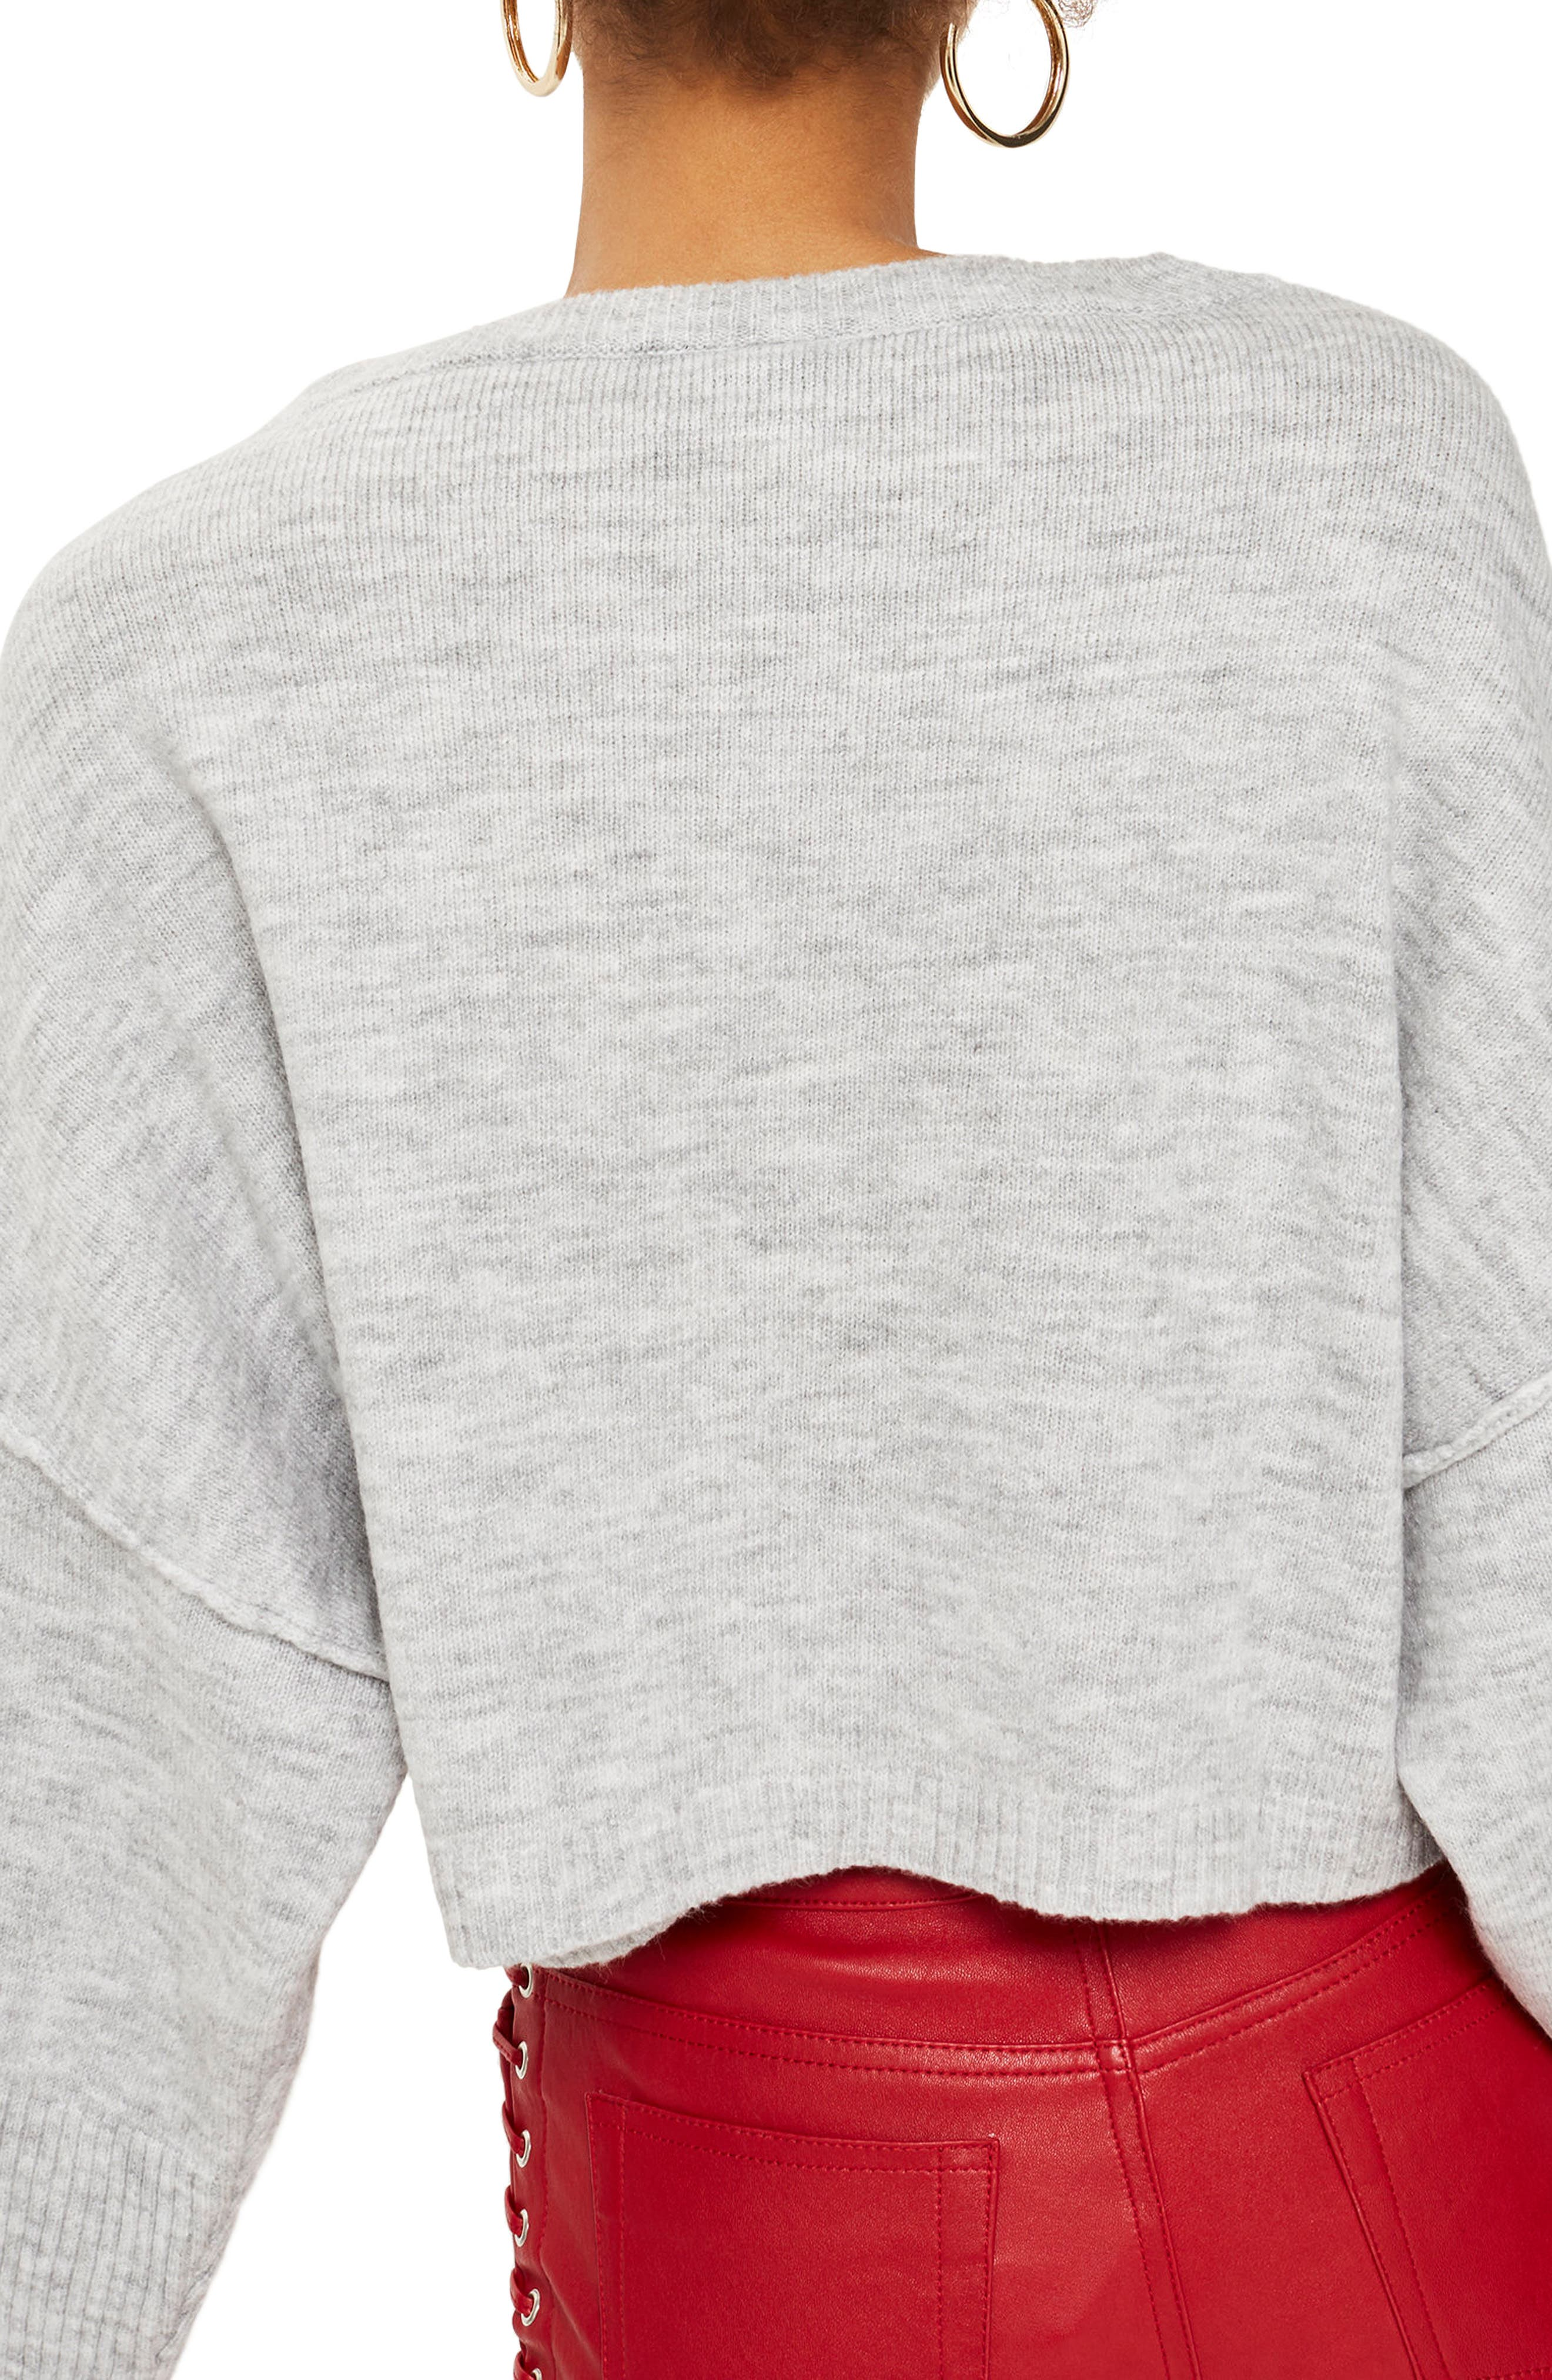 Wide Sleeve Crop Sweater,                             Alternate thumbnail 2, color,                             020